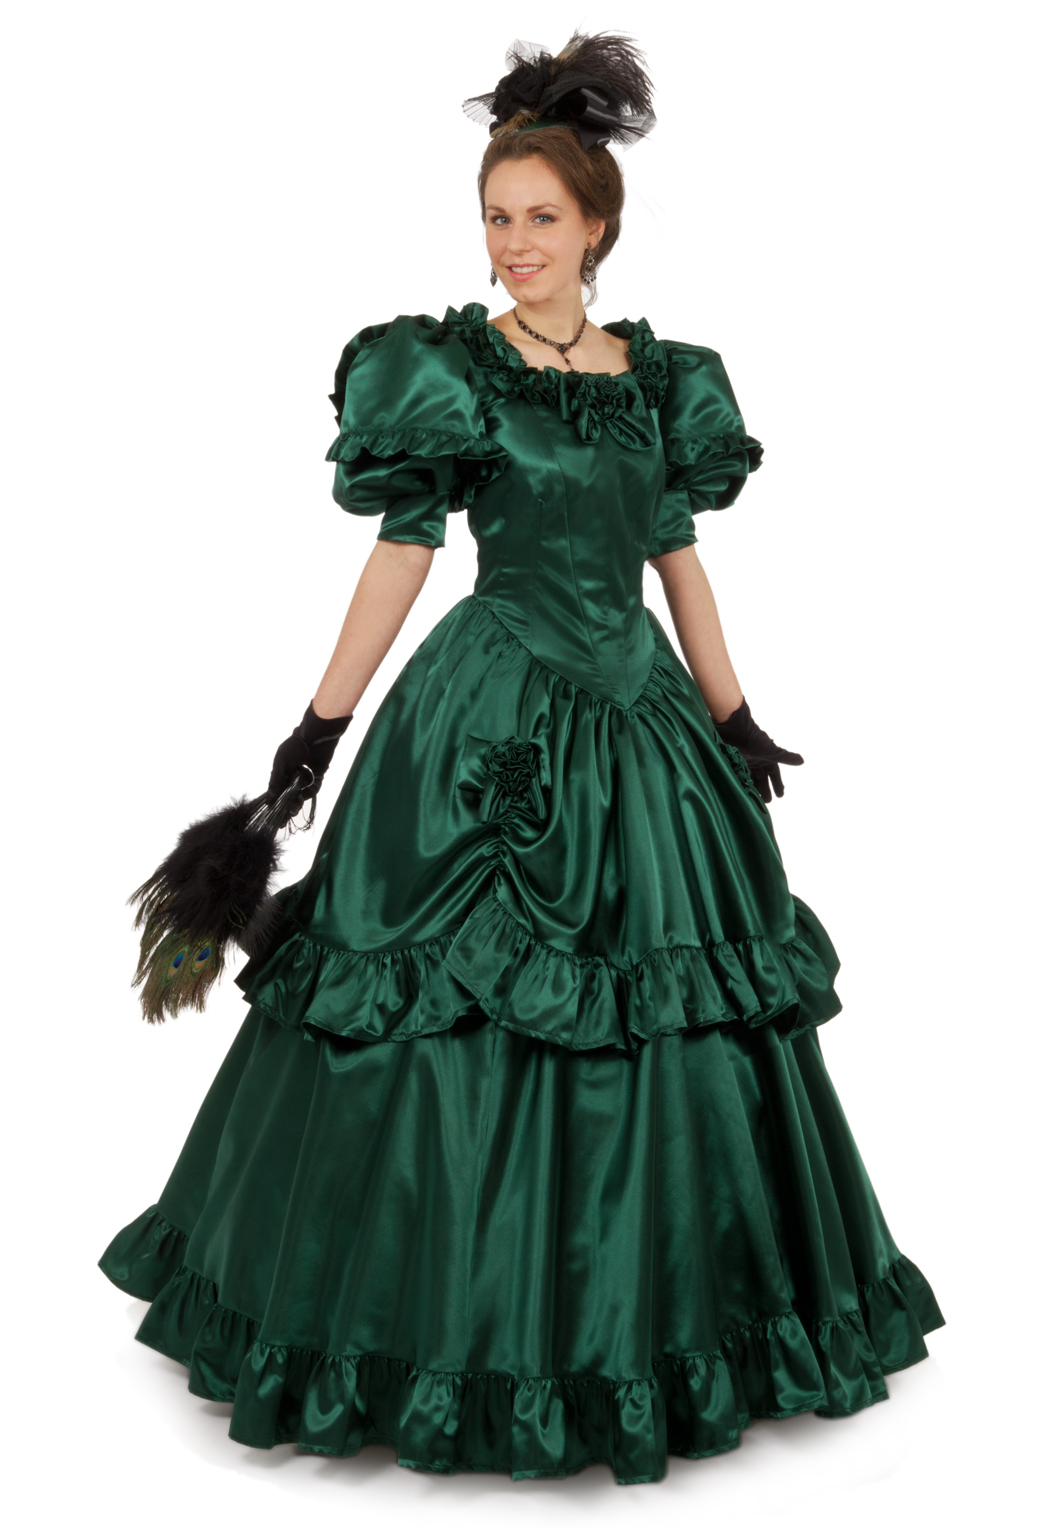 Magnolia Victorian Satin Ball Gown | Recollections